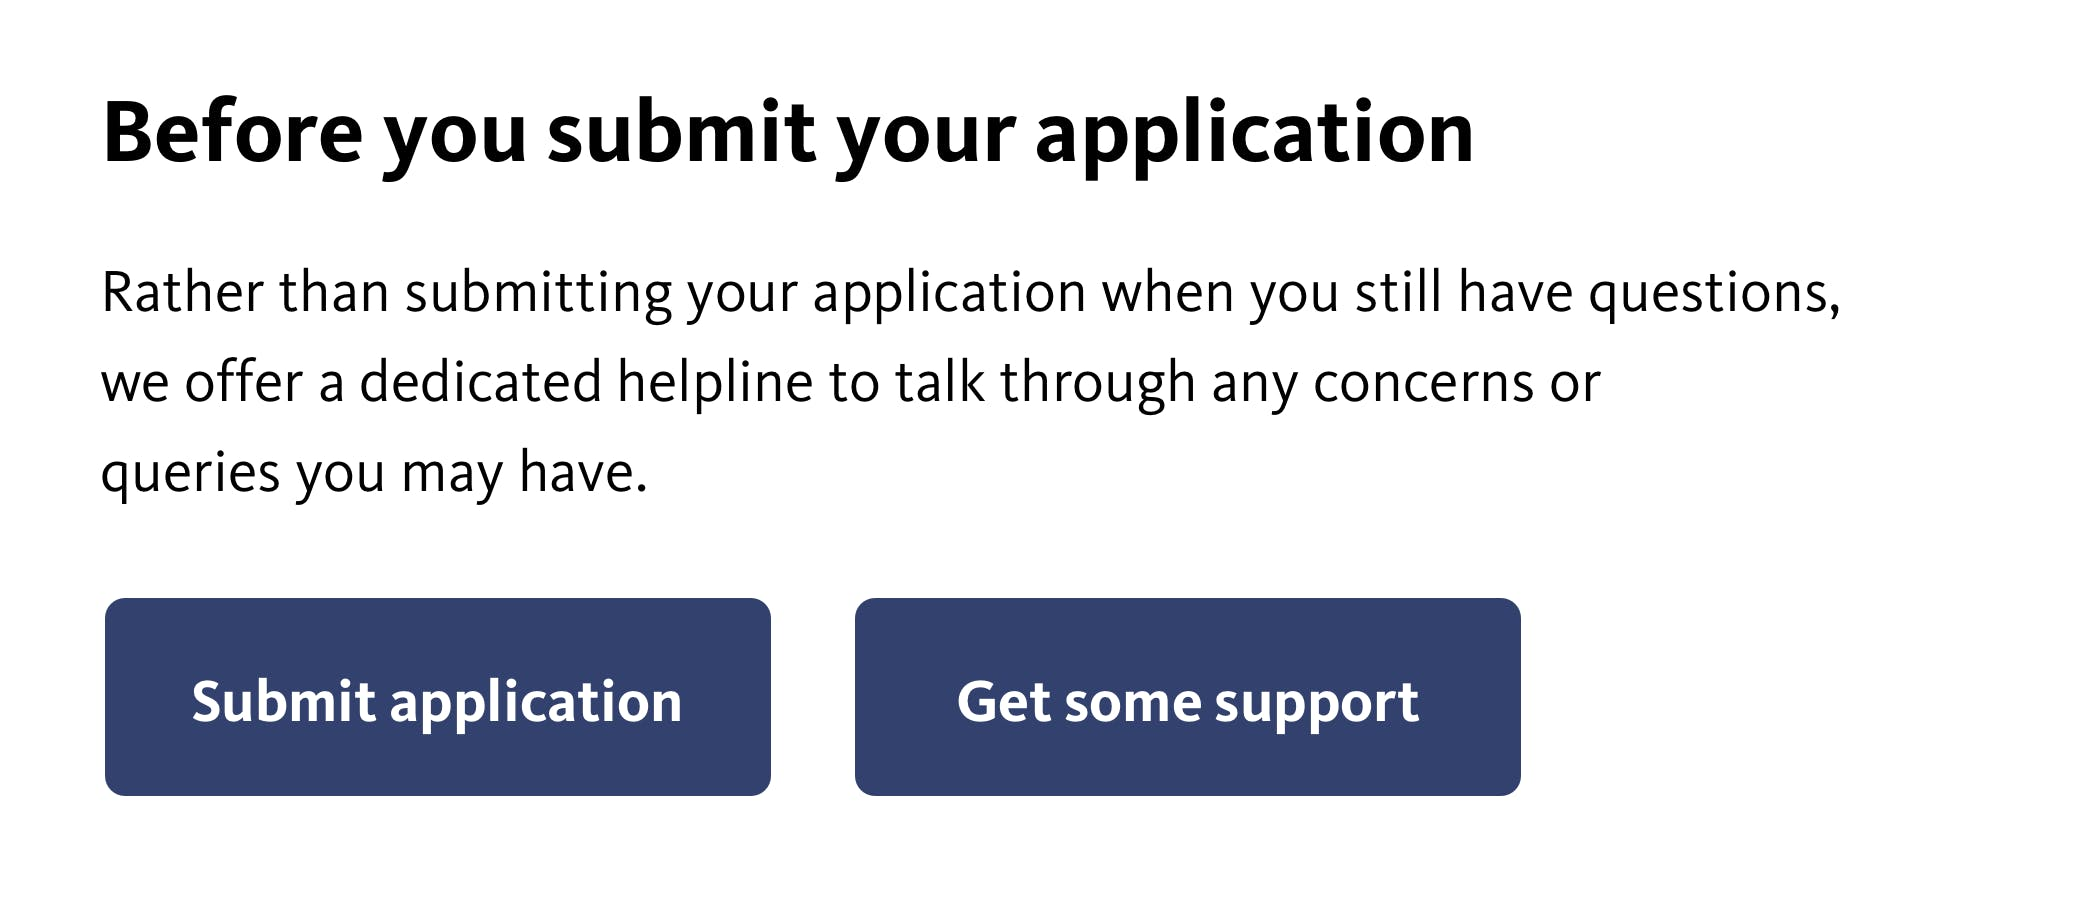 Image showing an application submission with two equally prominent buttons